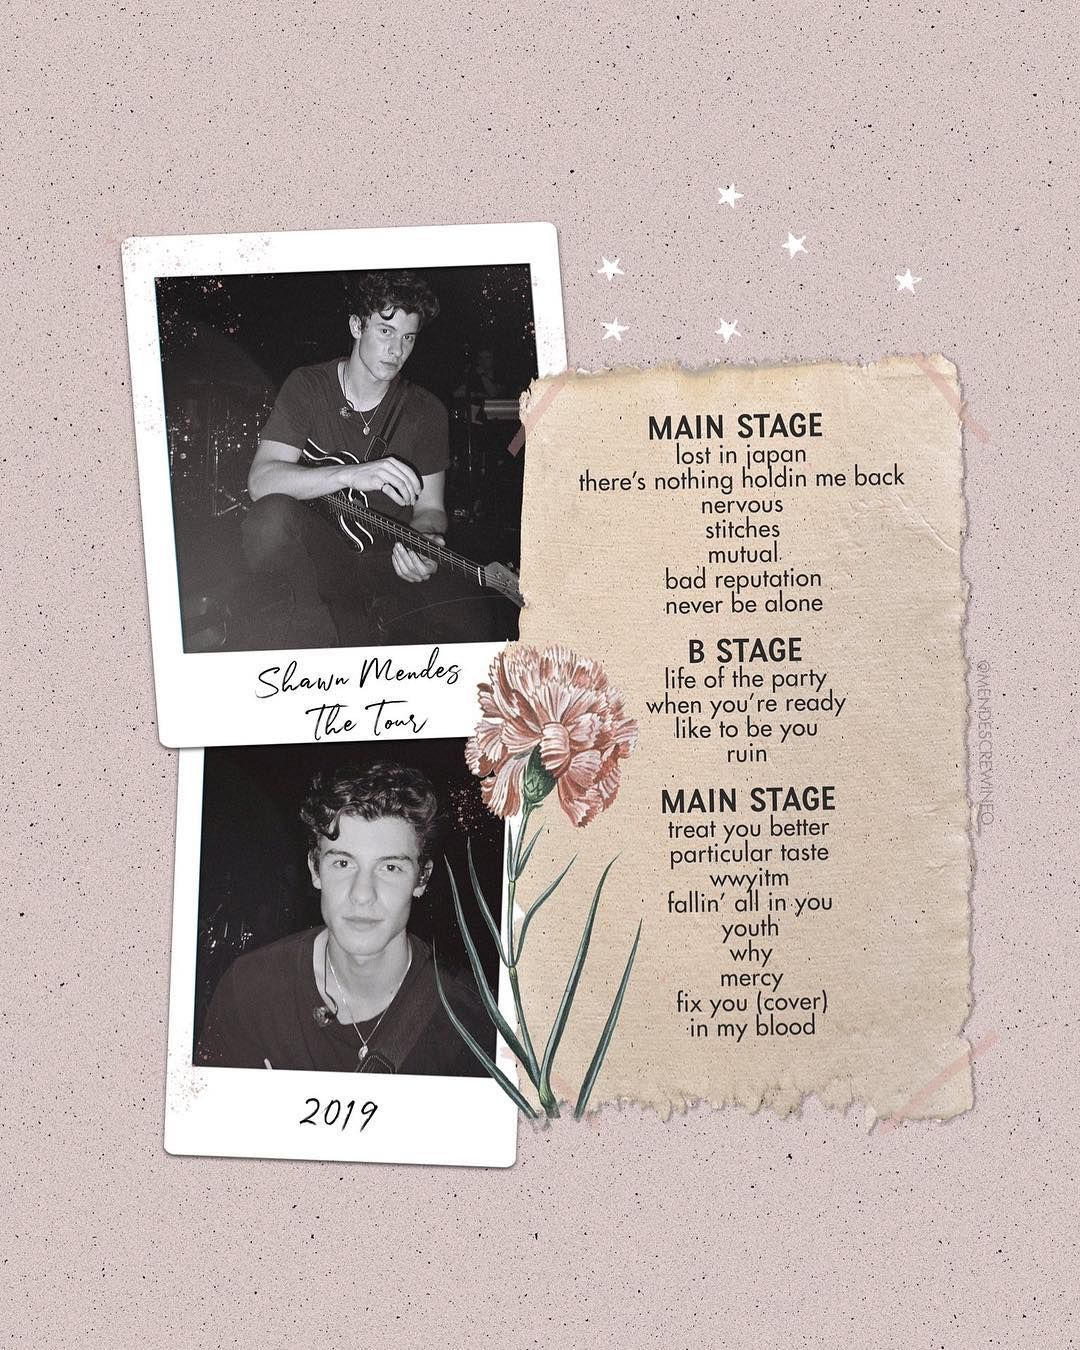 Shawn Mendes Updates On Instagram Shawn Mendes The Tour Setlist Shawnmendesthetouramsterdam Ikwydls Isn T Includ Shawn Mendes Shawn Mendes Merch Shawn